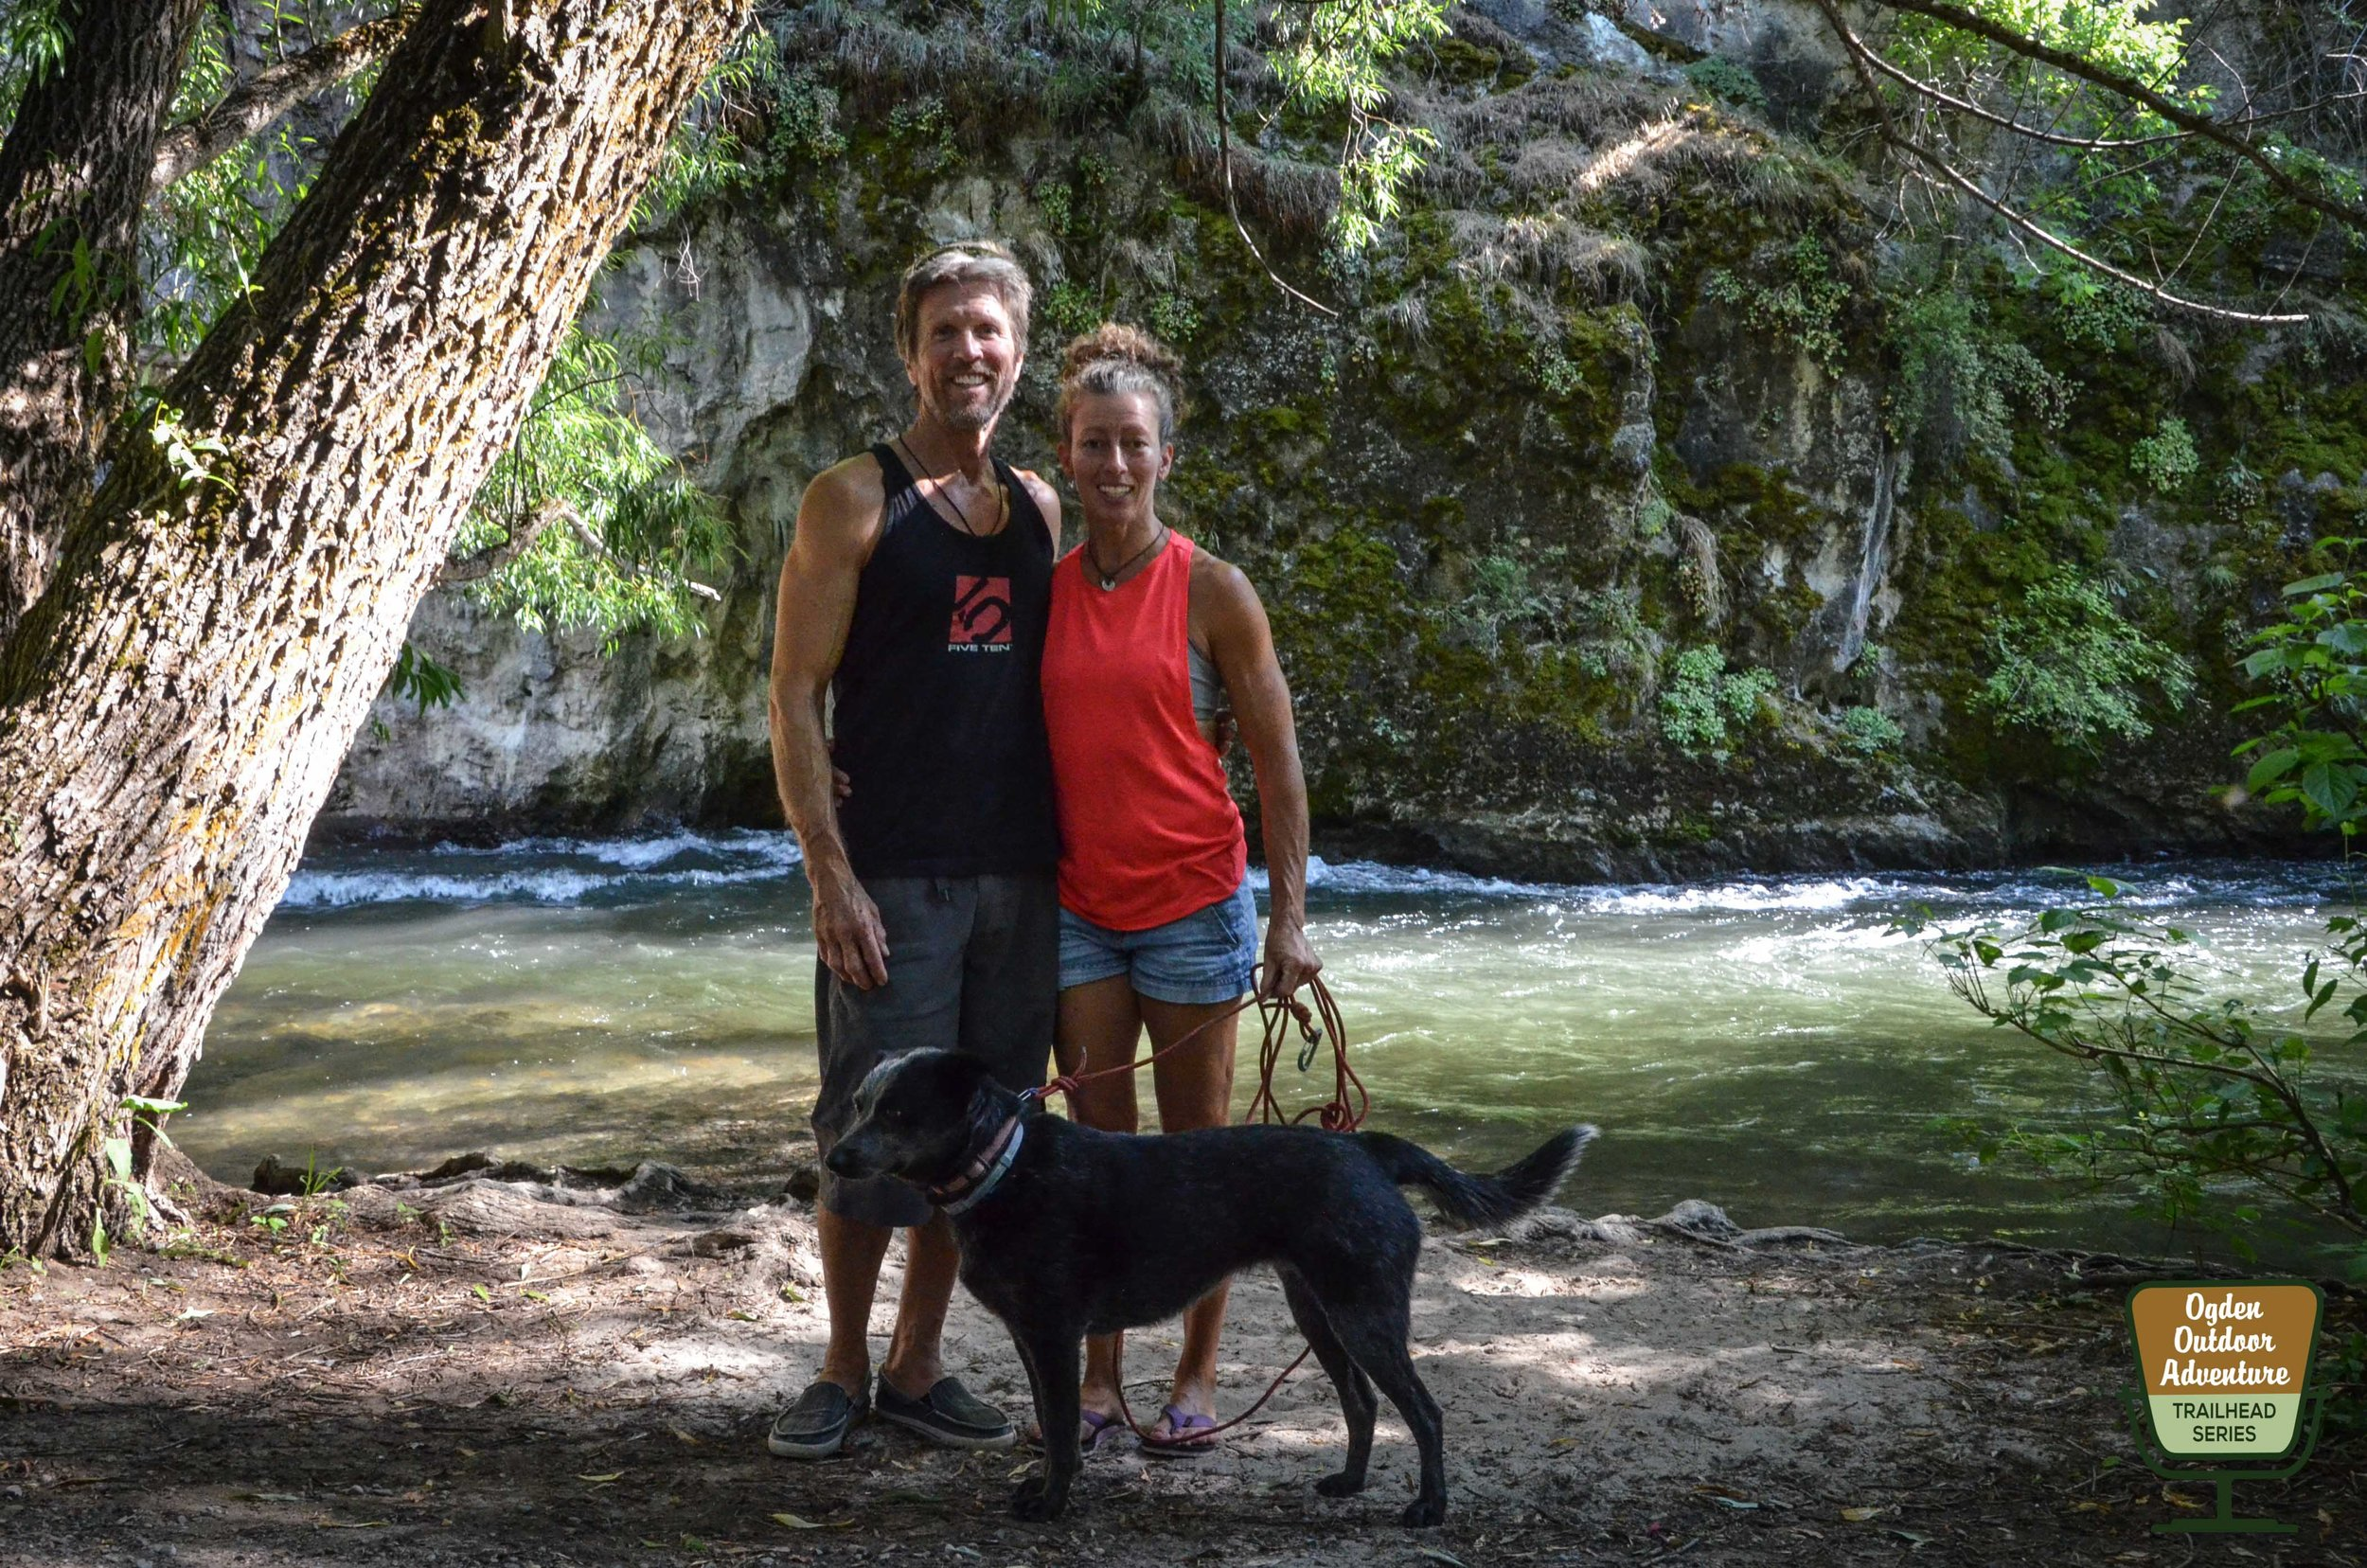 Chuck, Maggie & Lola Odette down by the river in Logan Canyon.